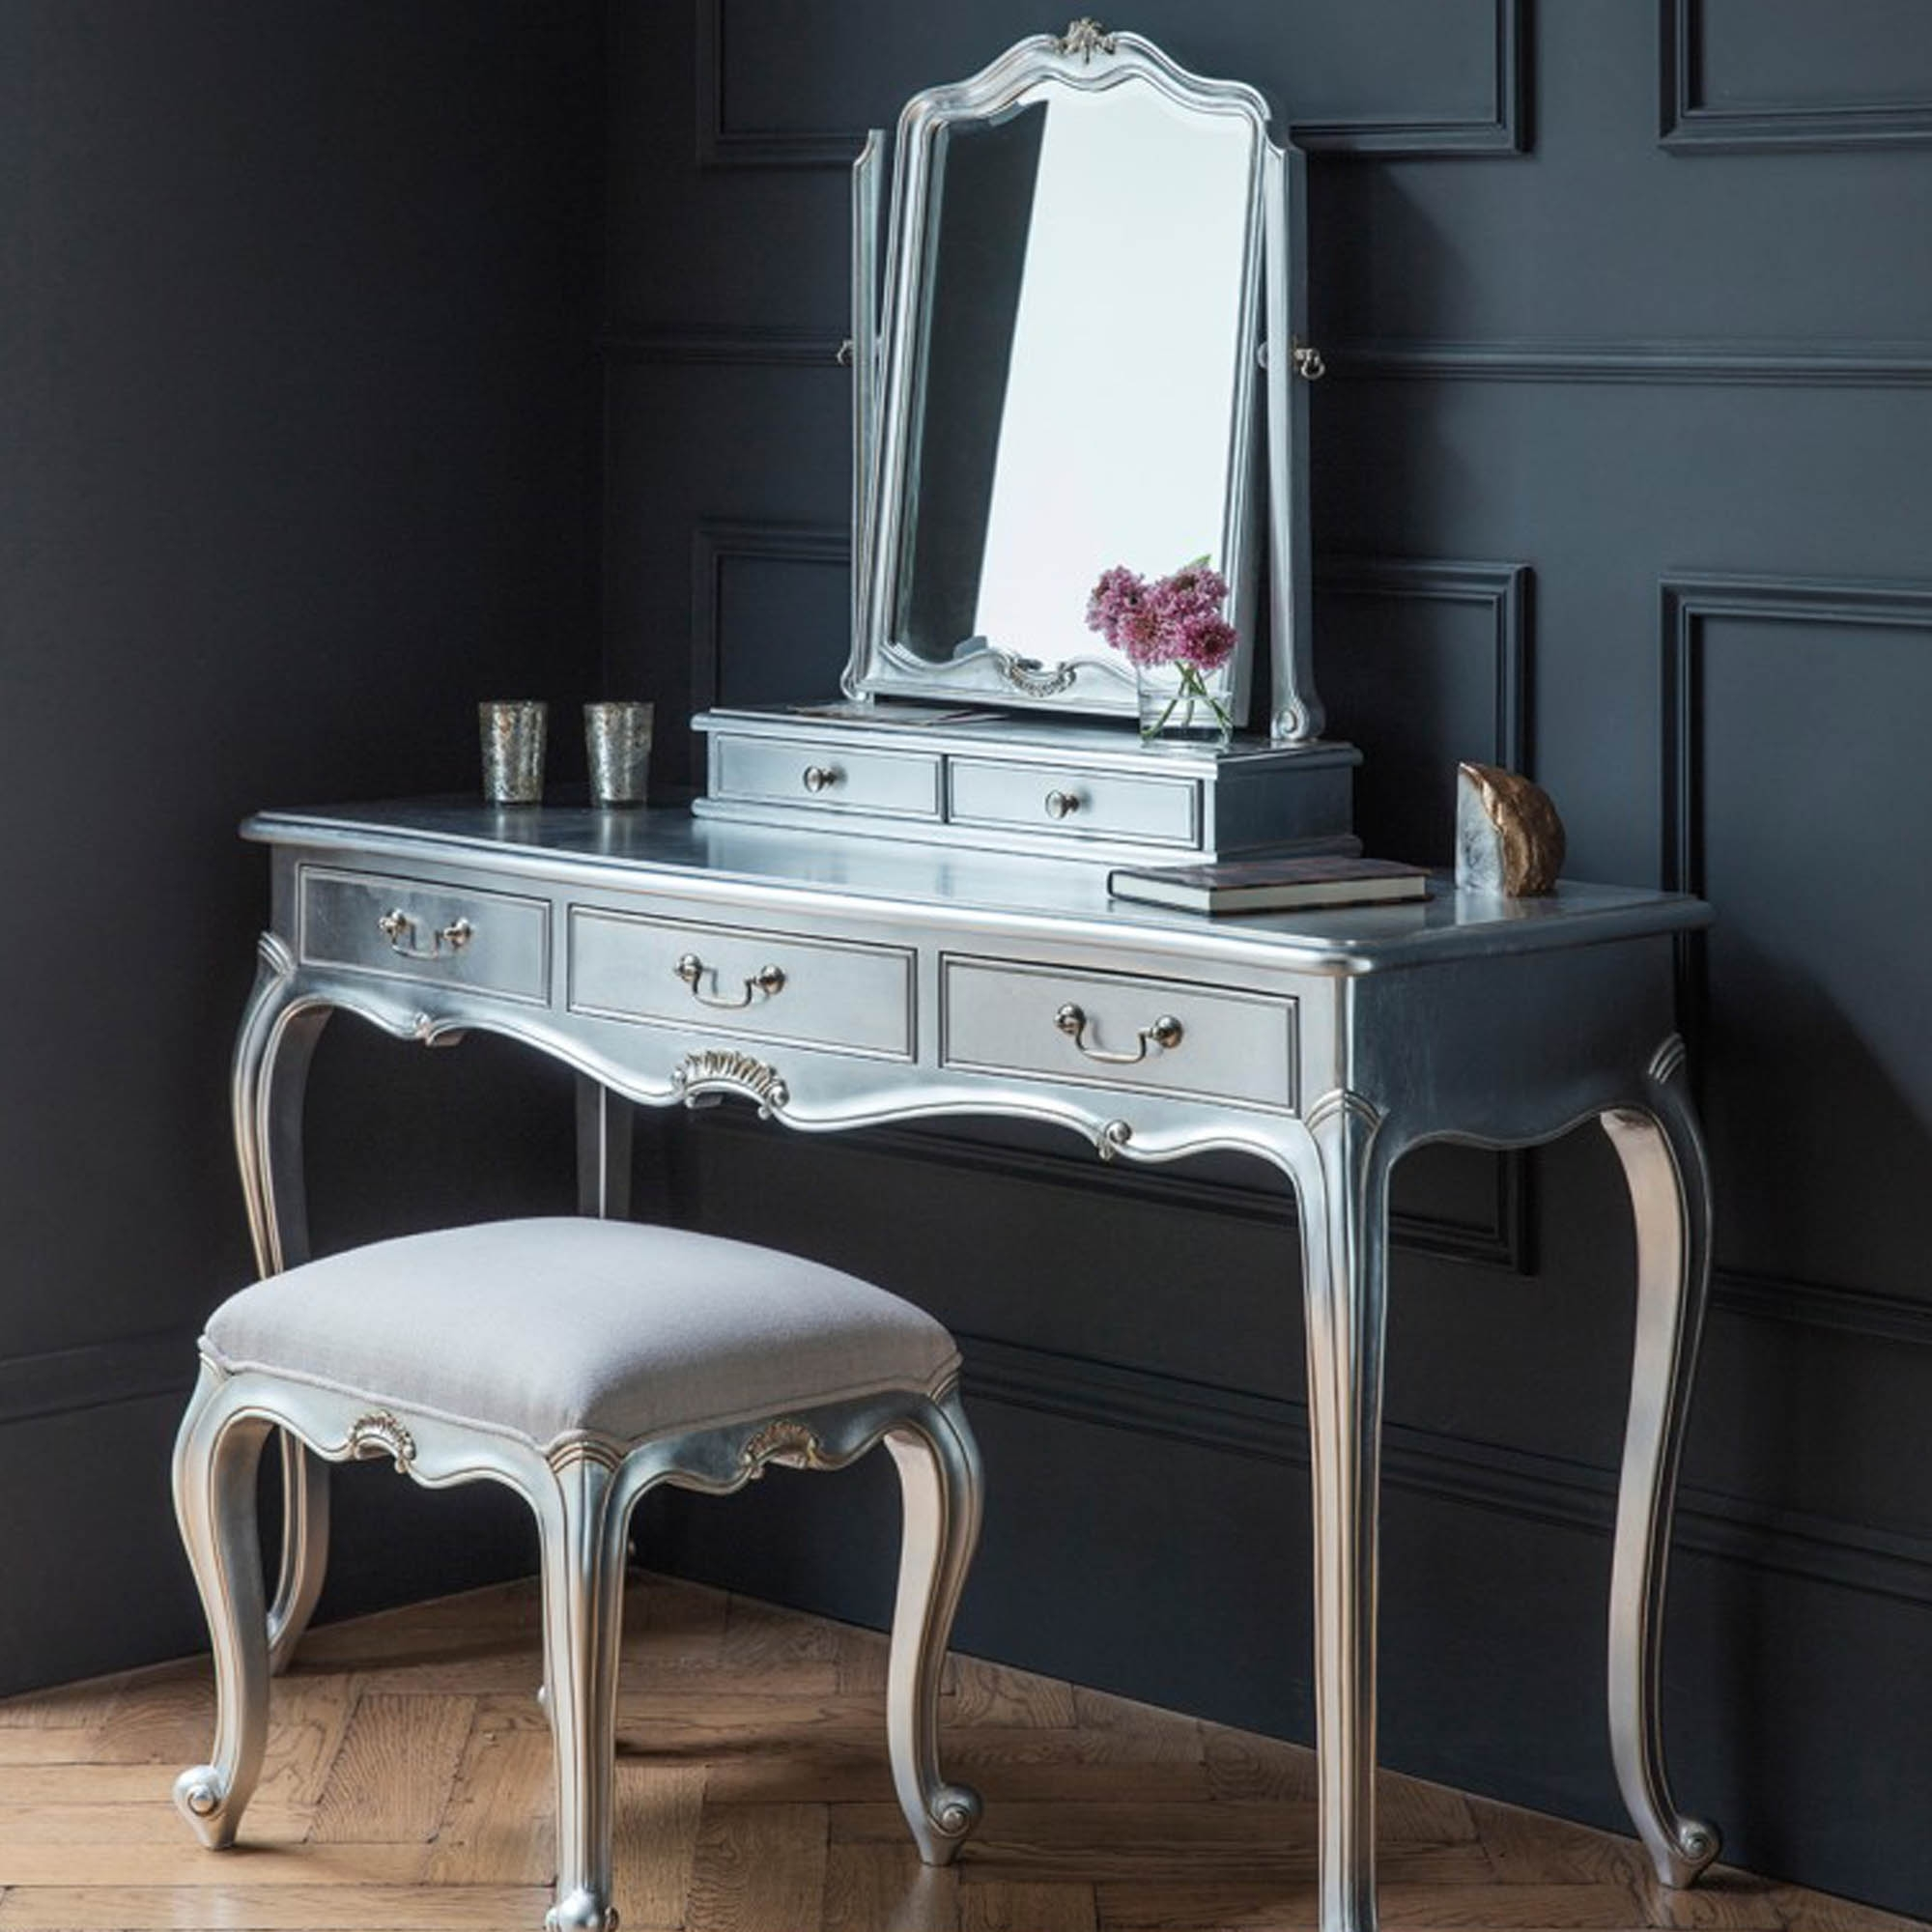 Chic silver 3 drawers shabby chic dressing table homesdirect365 chic silver 3 drawers shabby chic dressing table geotapseo Images